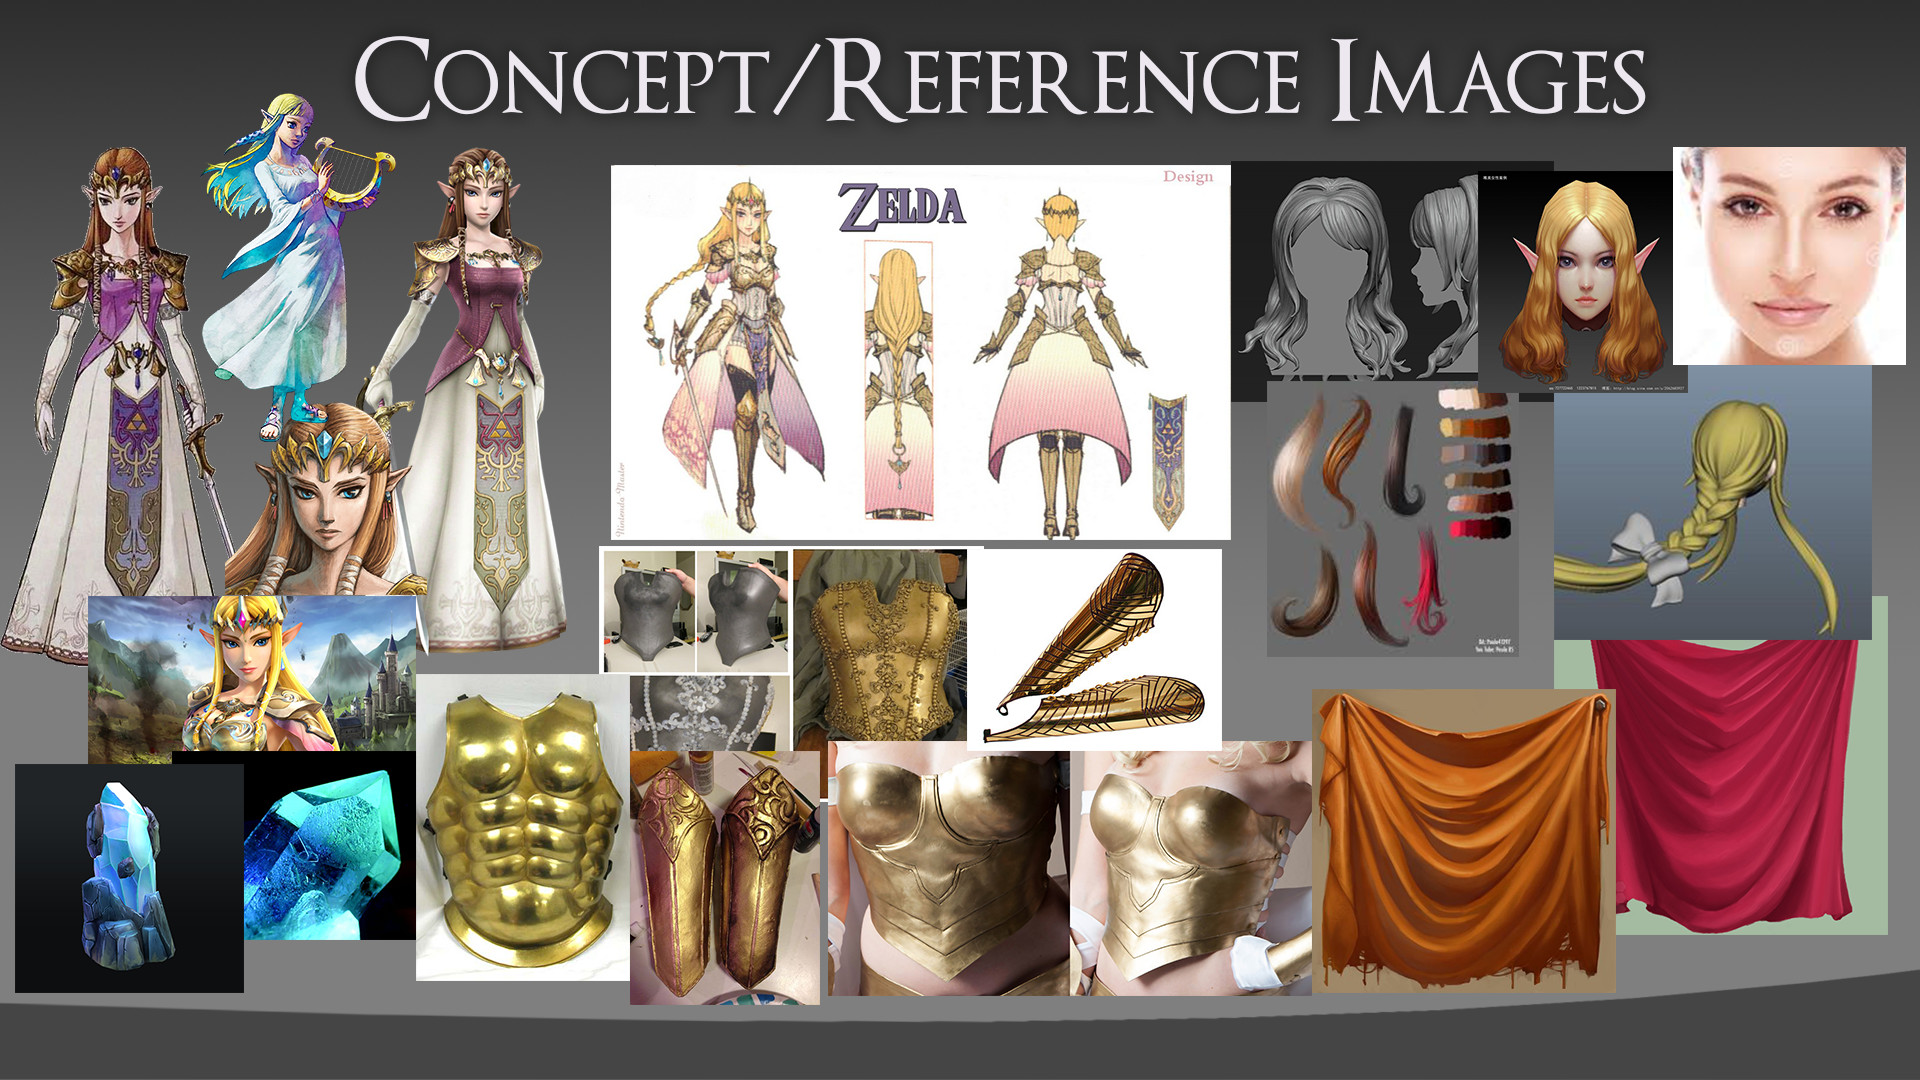 The main concept used was the image at the top middle. The rest of the images were used for design tweaks made to the main concept art and also for texture/colour reference.